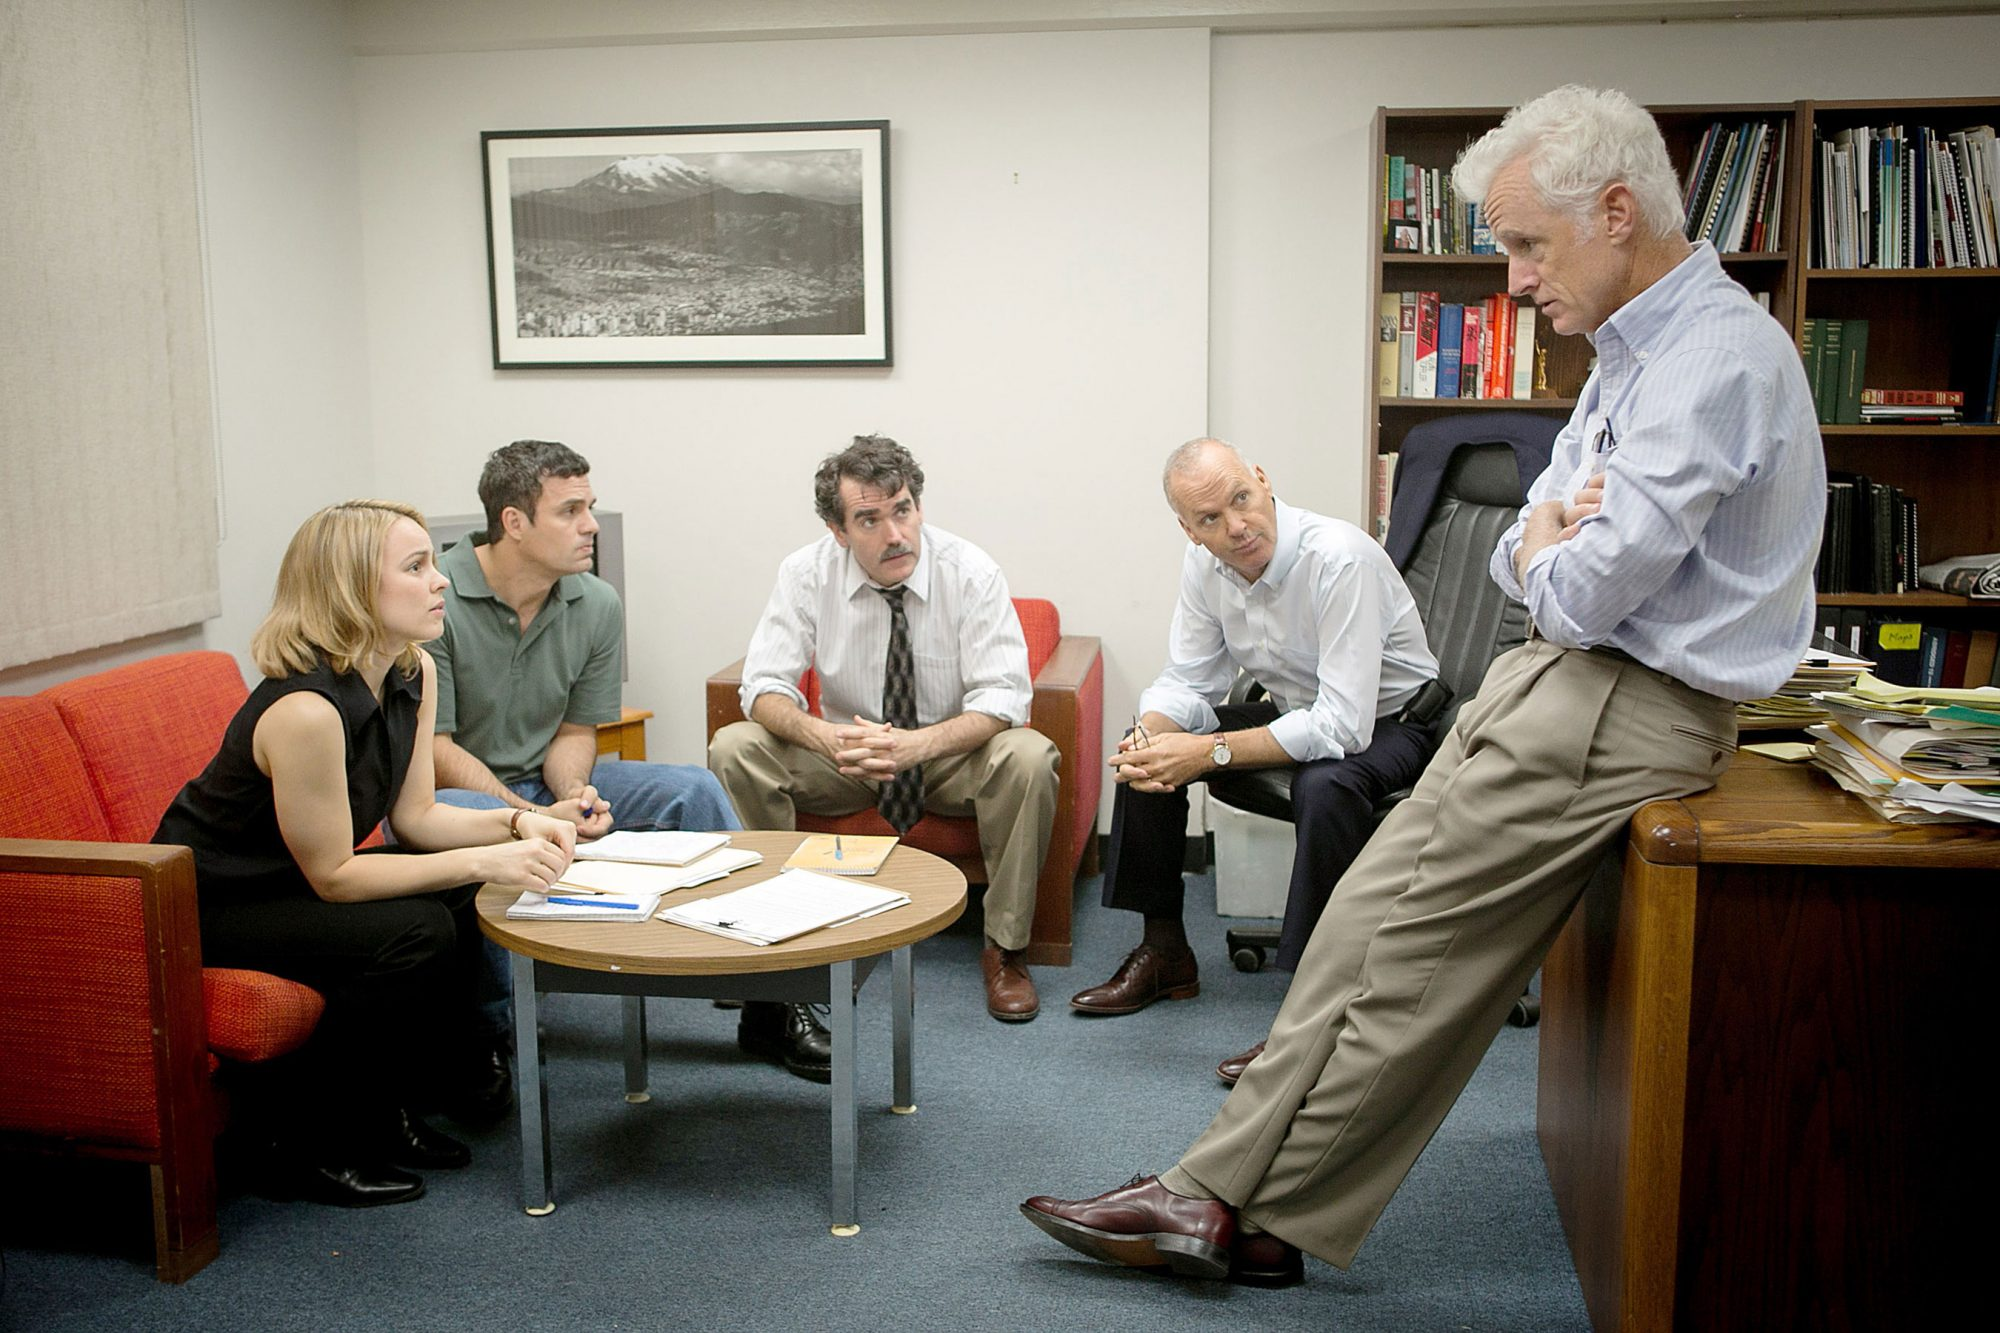 SPOTLIGHT, from left: Rachel McAdams, Mark Ruffalo, Brian d'Arcy James, Michael Keaton, John